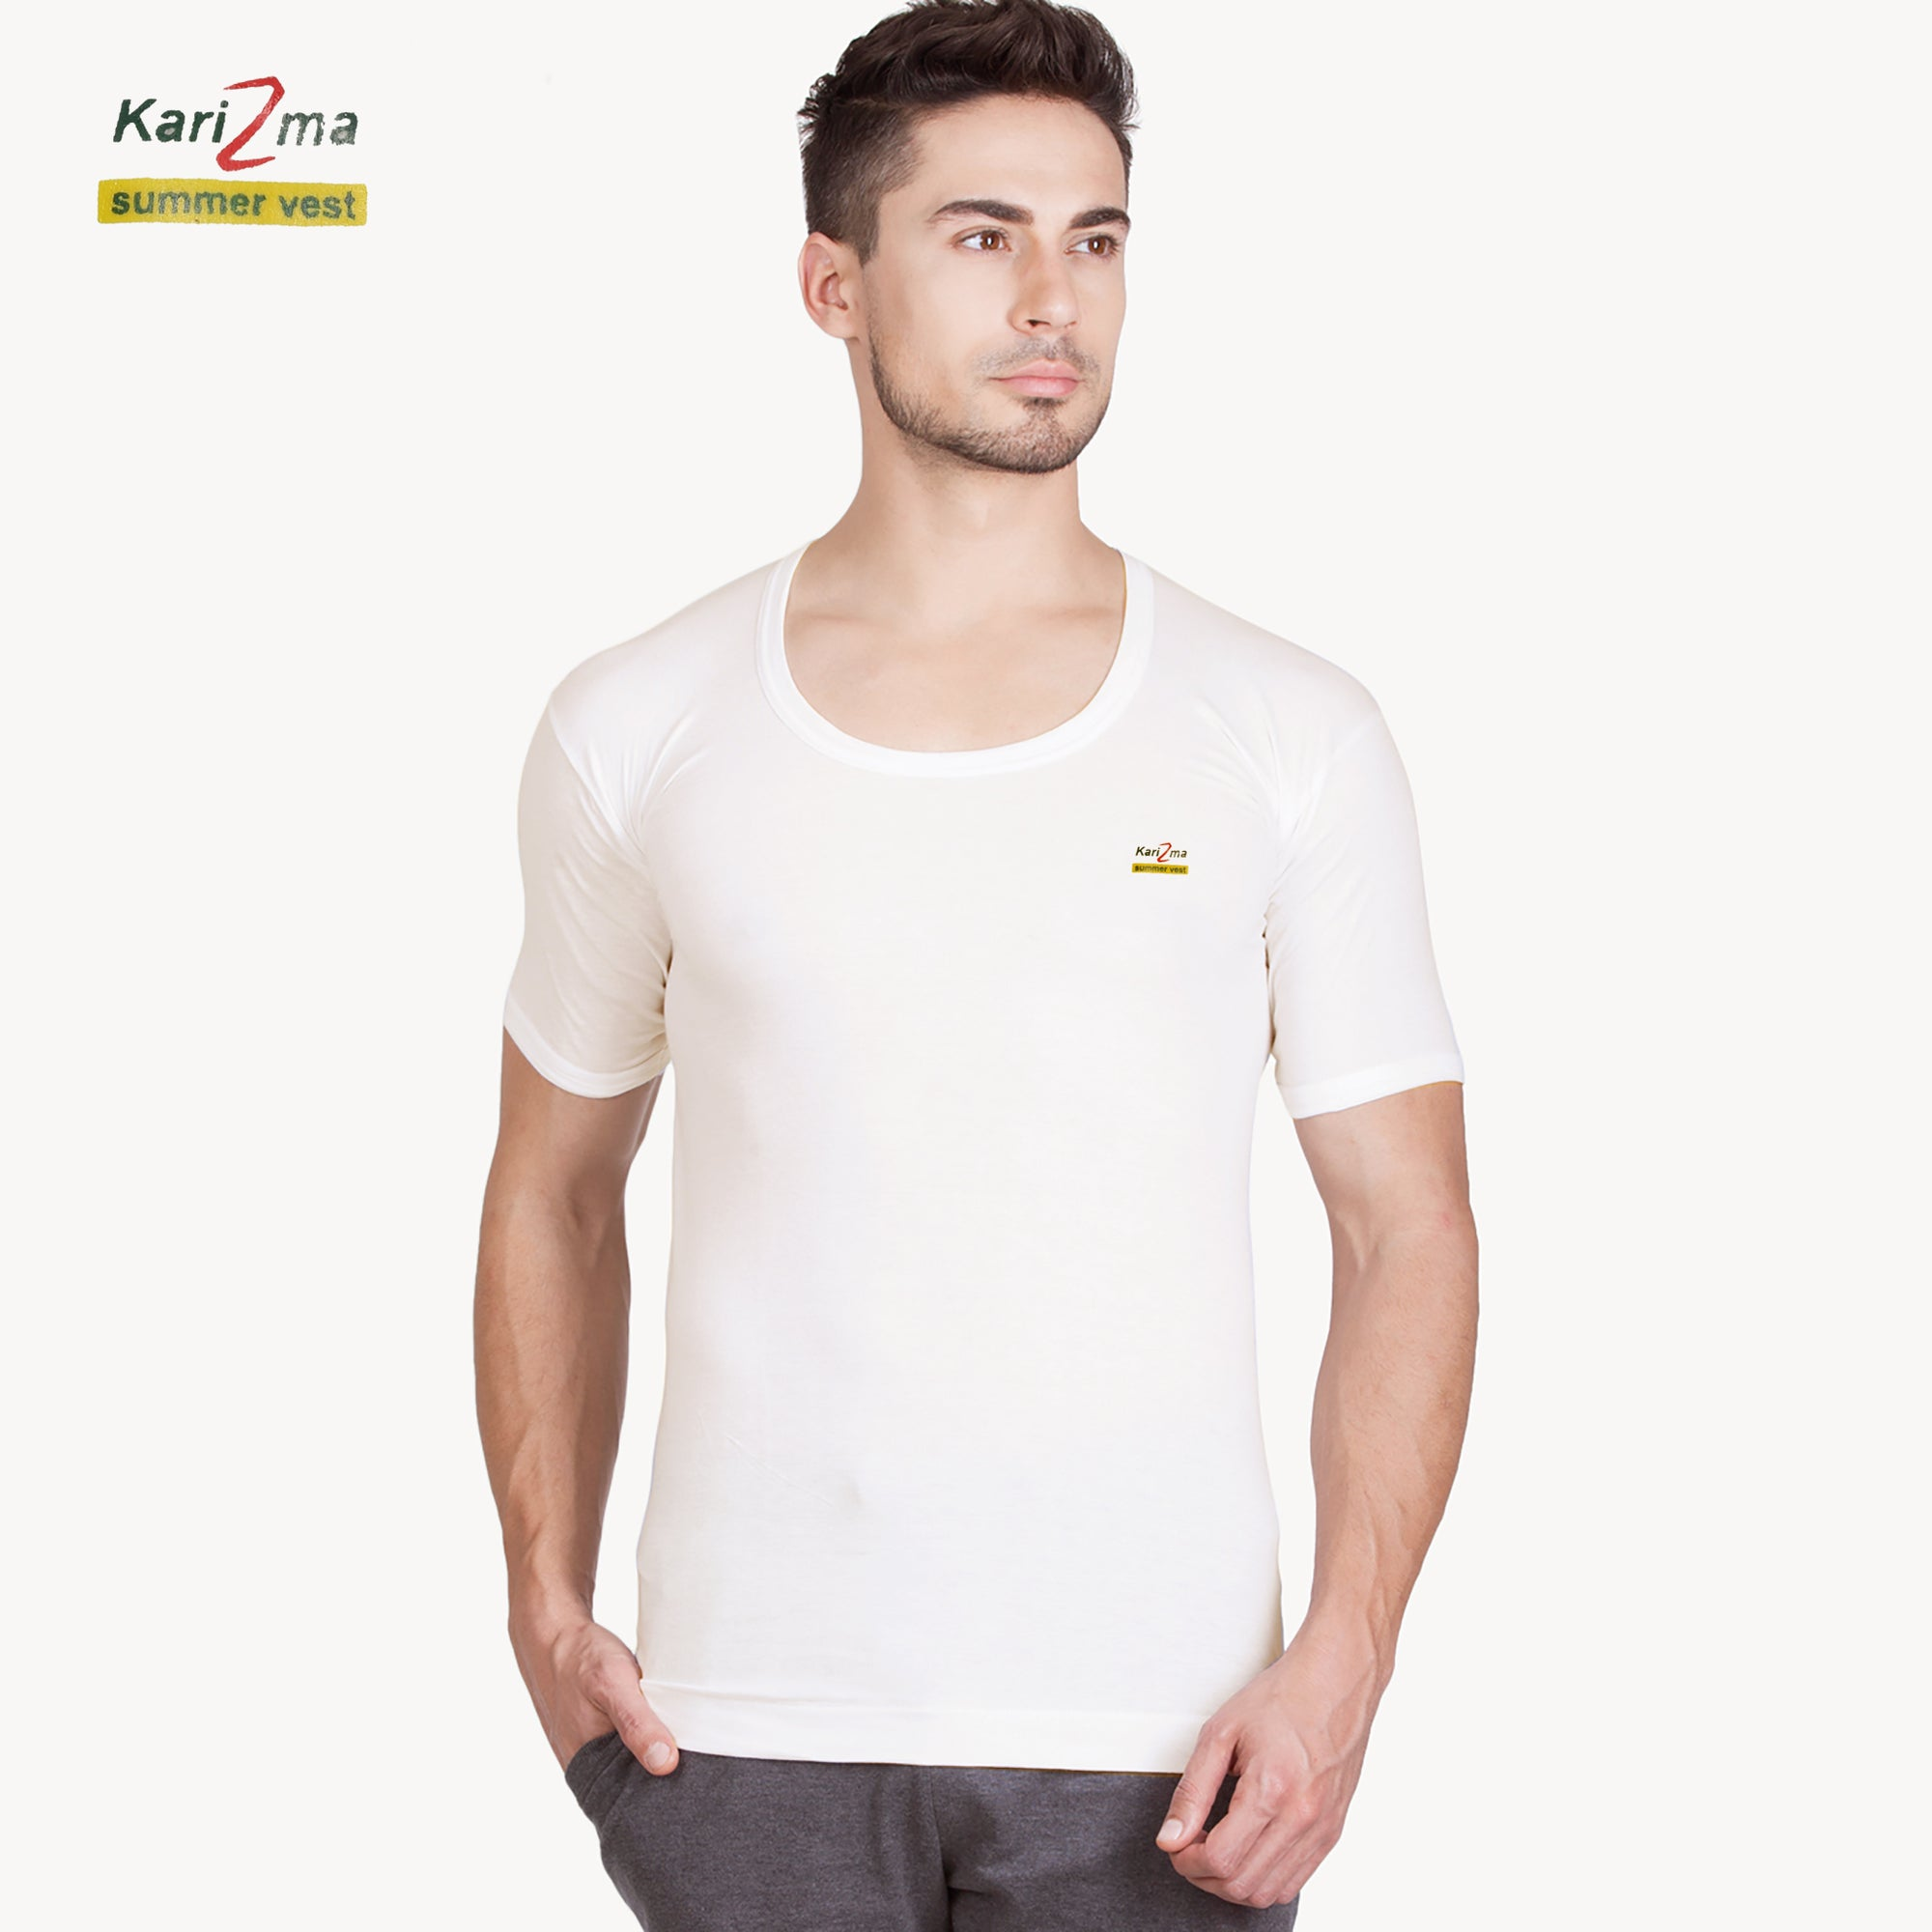 brandsego - Karizma Inner-Wear Short Sleeve Vest For Men-BE4329